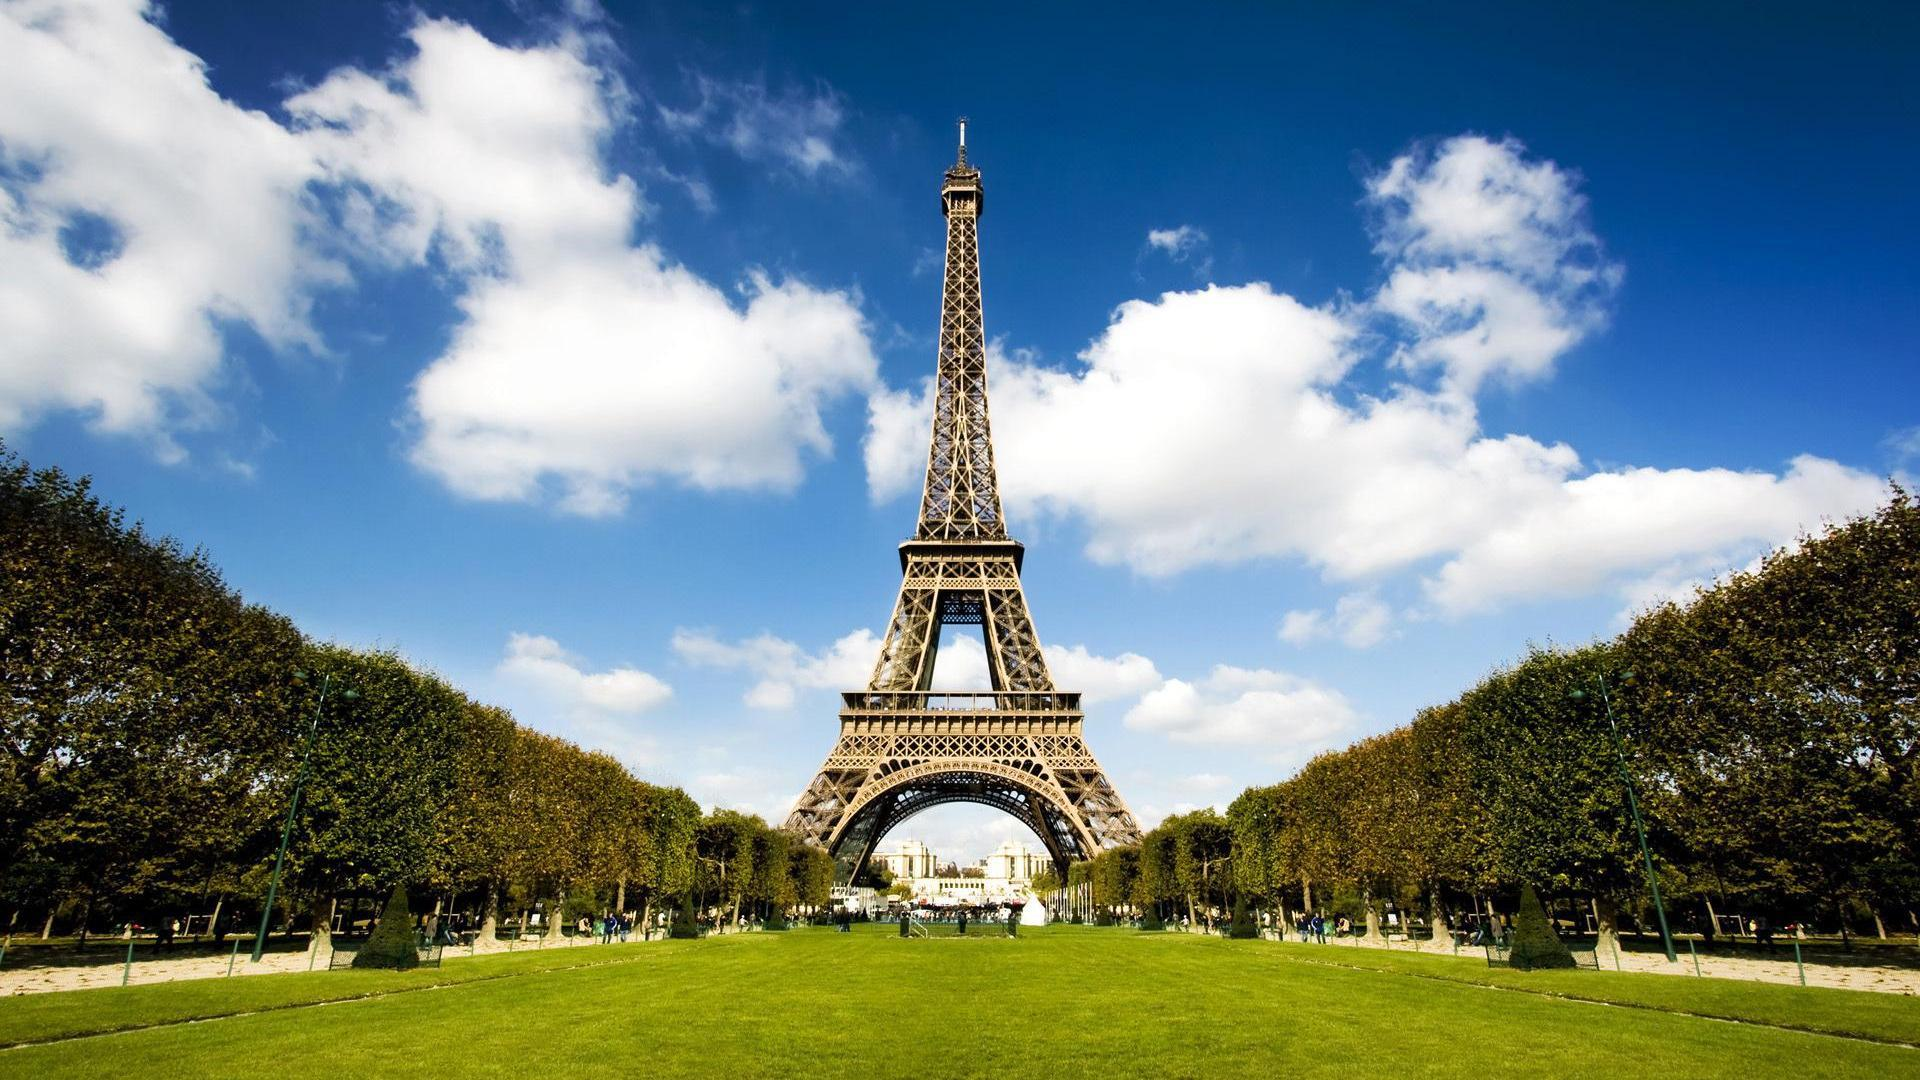 Eiffel Tower Backgrounds Wallpaper